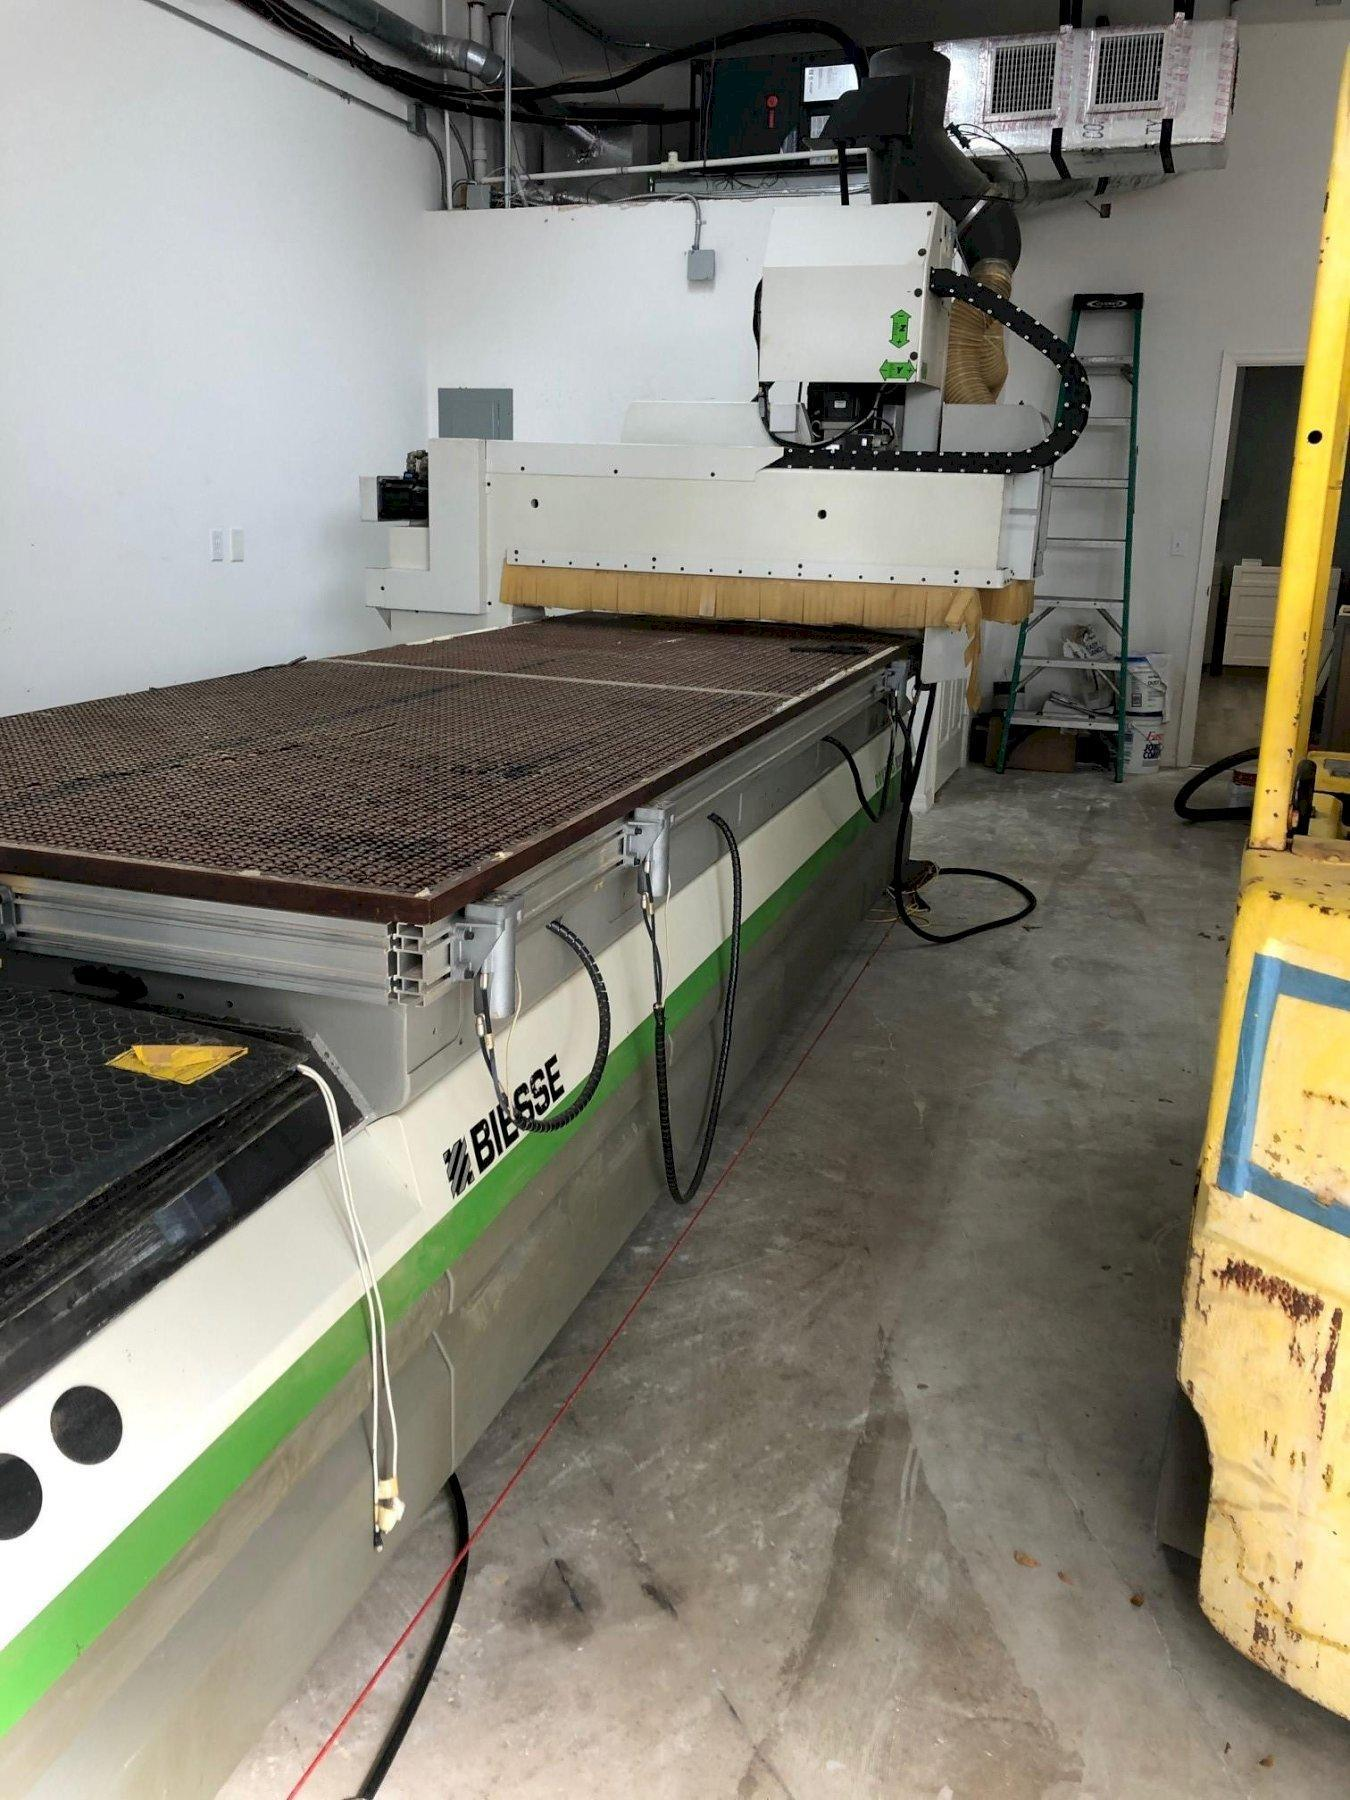 "Biesse Rover B 4.40 FT CNC Router 2006 With: 145"" x 54.3"" Working Field, 16.1 HP Electrospindle, 10-Tool Changer, and External Transformer."